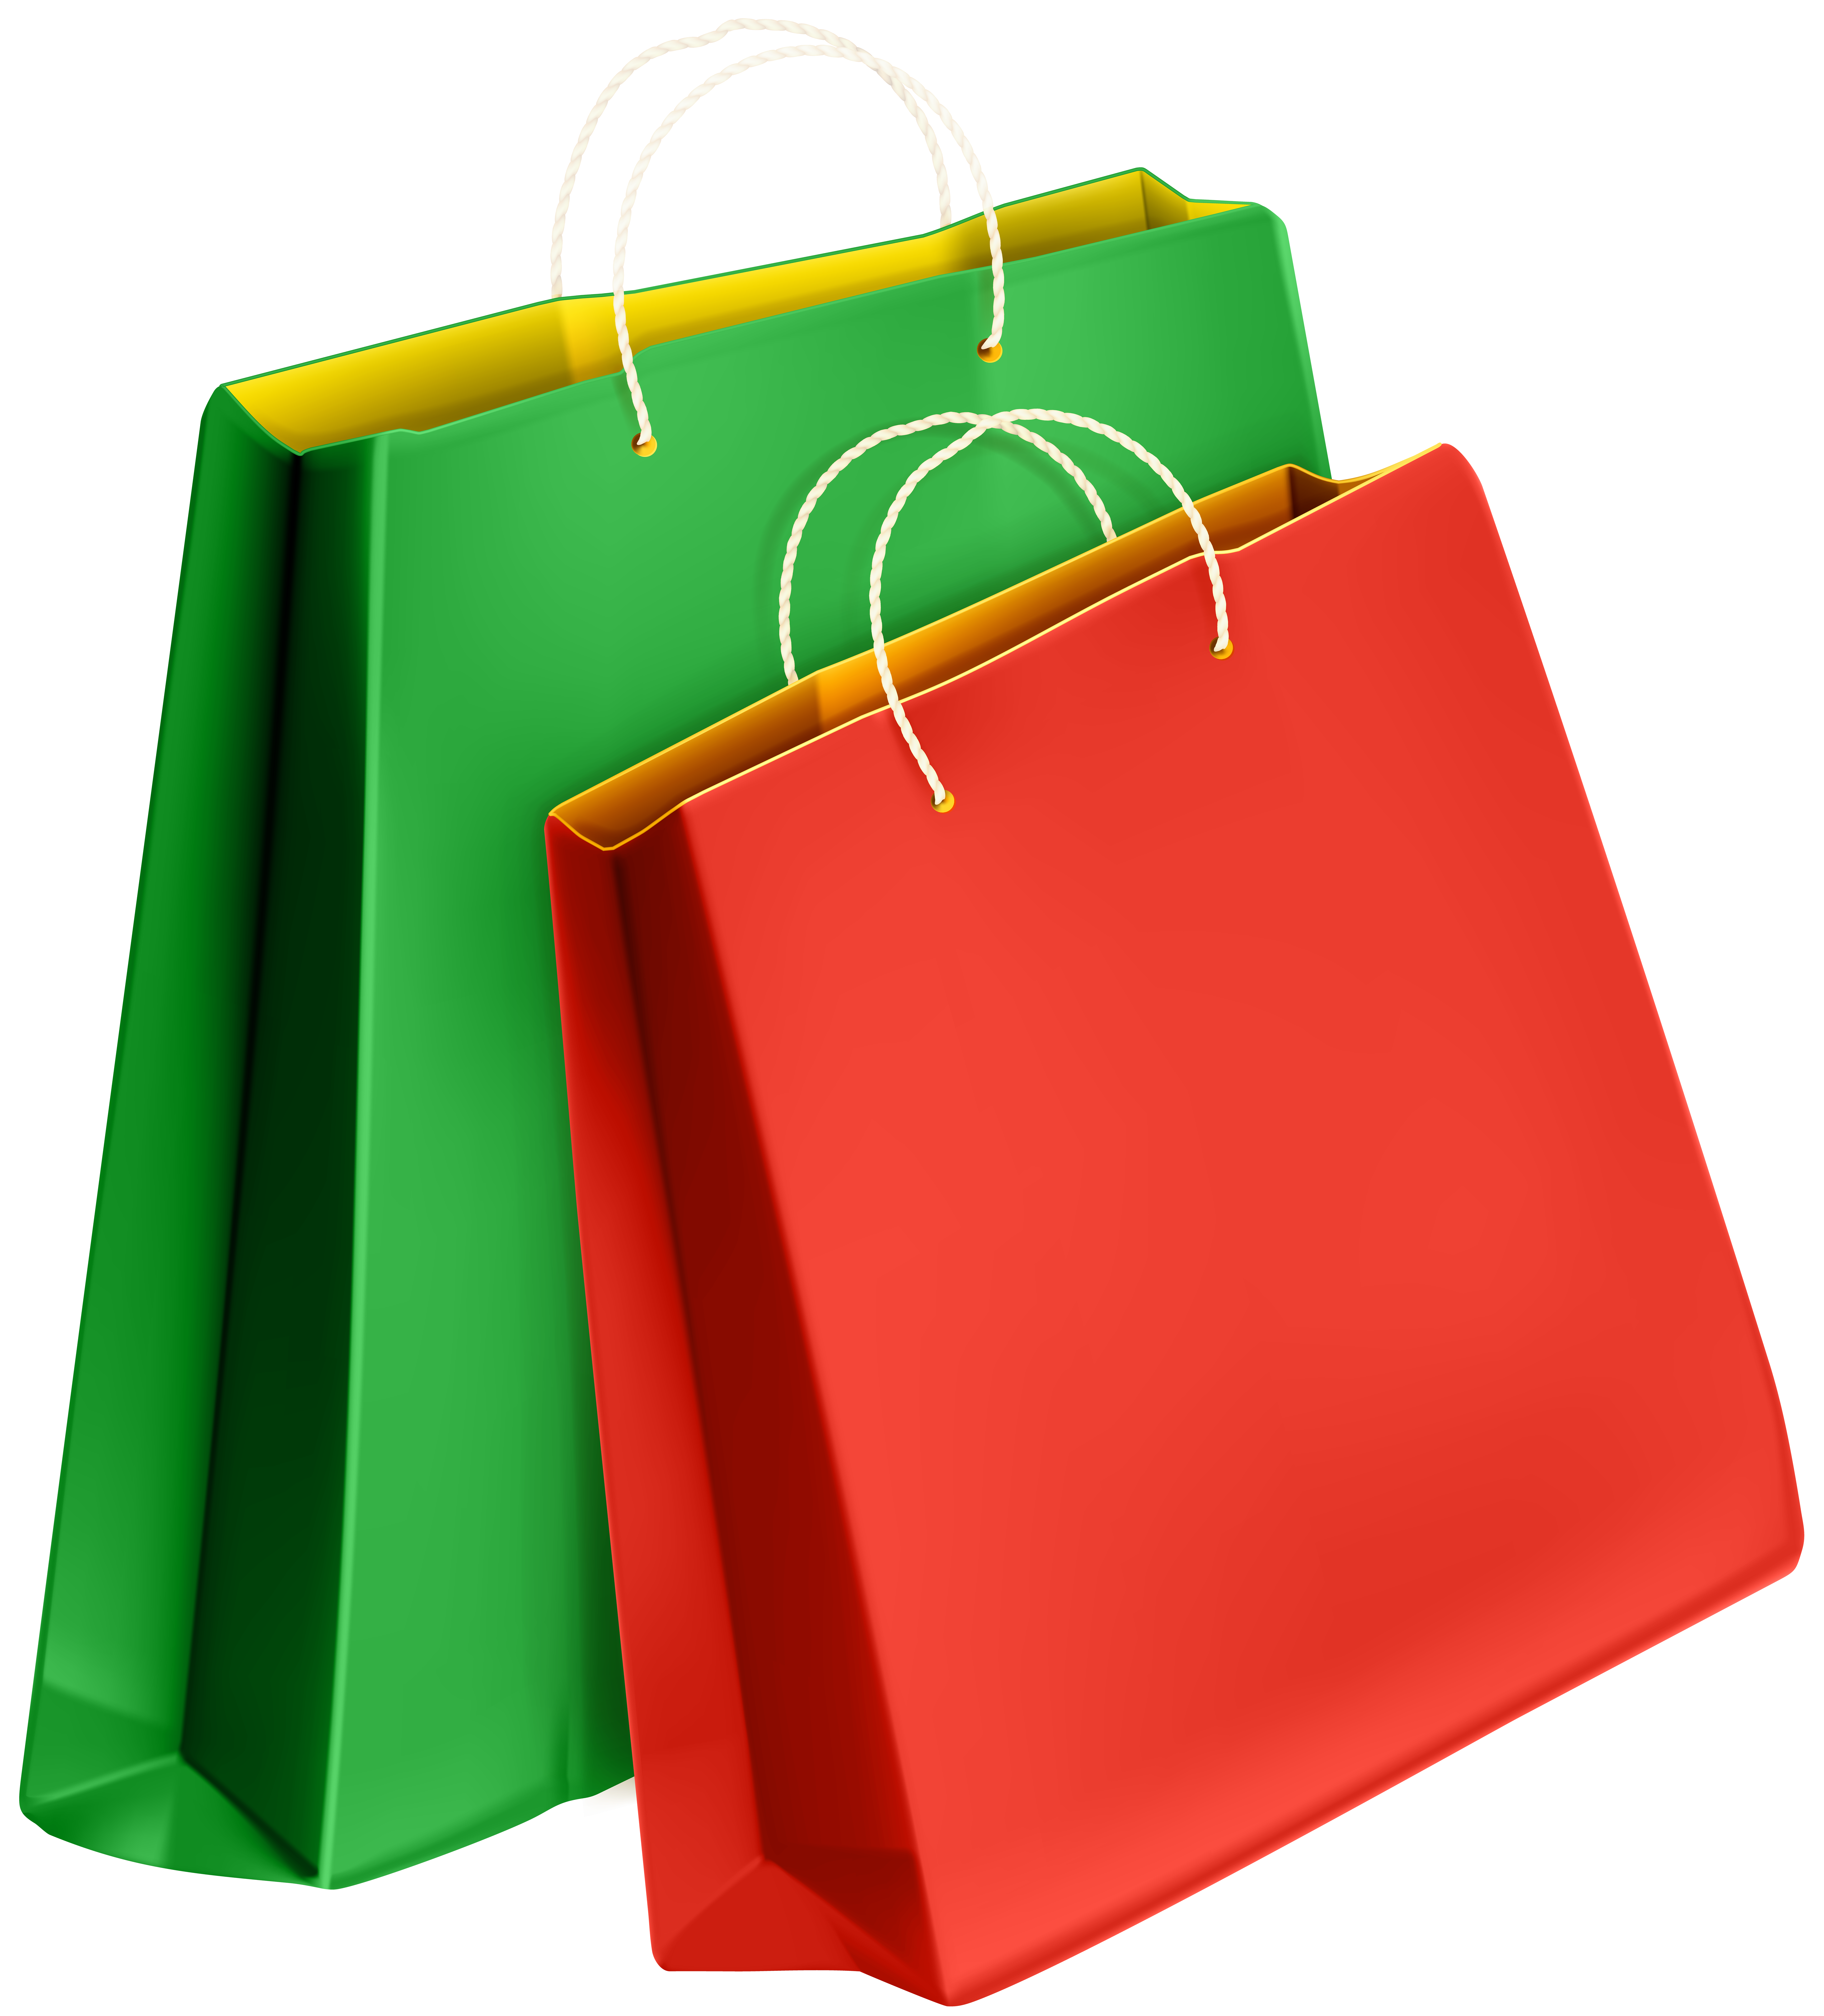 Bag of gifts clipart free library Gift Bags PNG Clip Art Image | Gallery Yopriceville - High-Quality ... free library